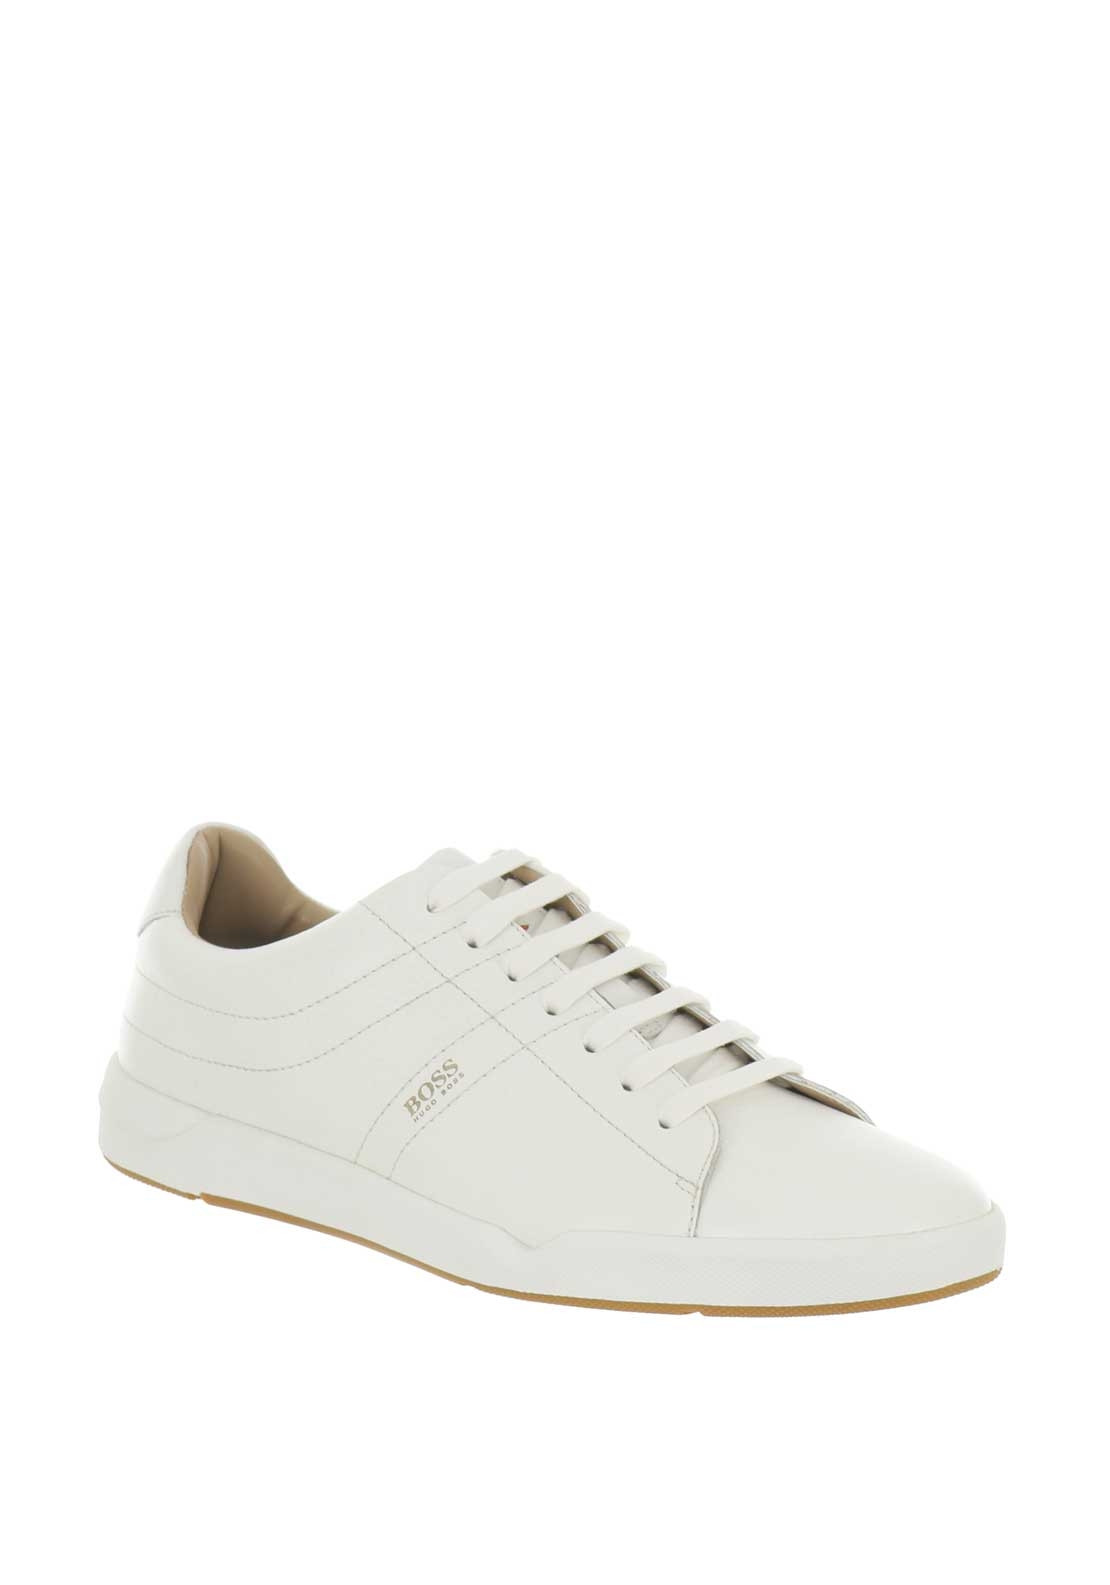 7679727c3026 Hugo Boss Stillness Tenn Trainers, White | McElhinneys